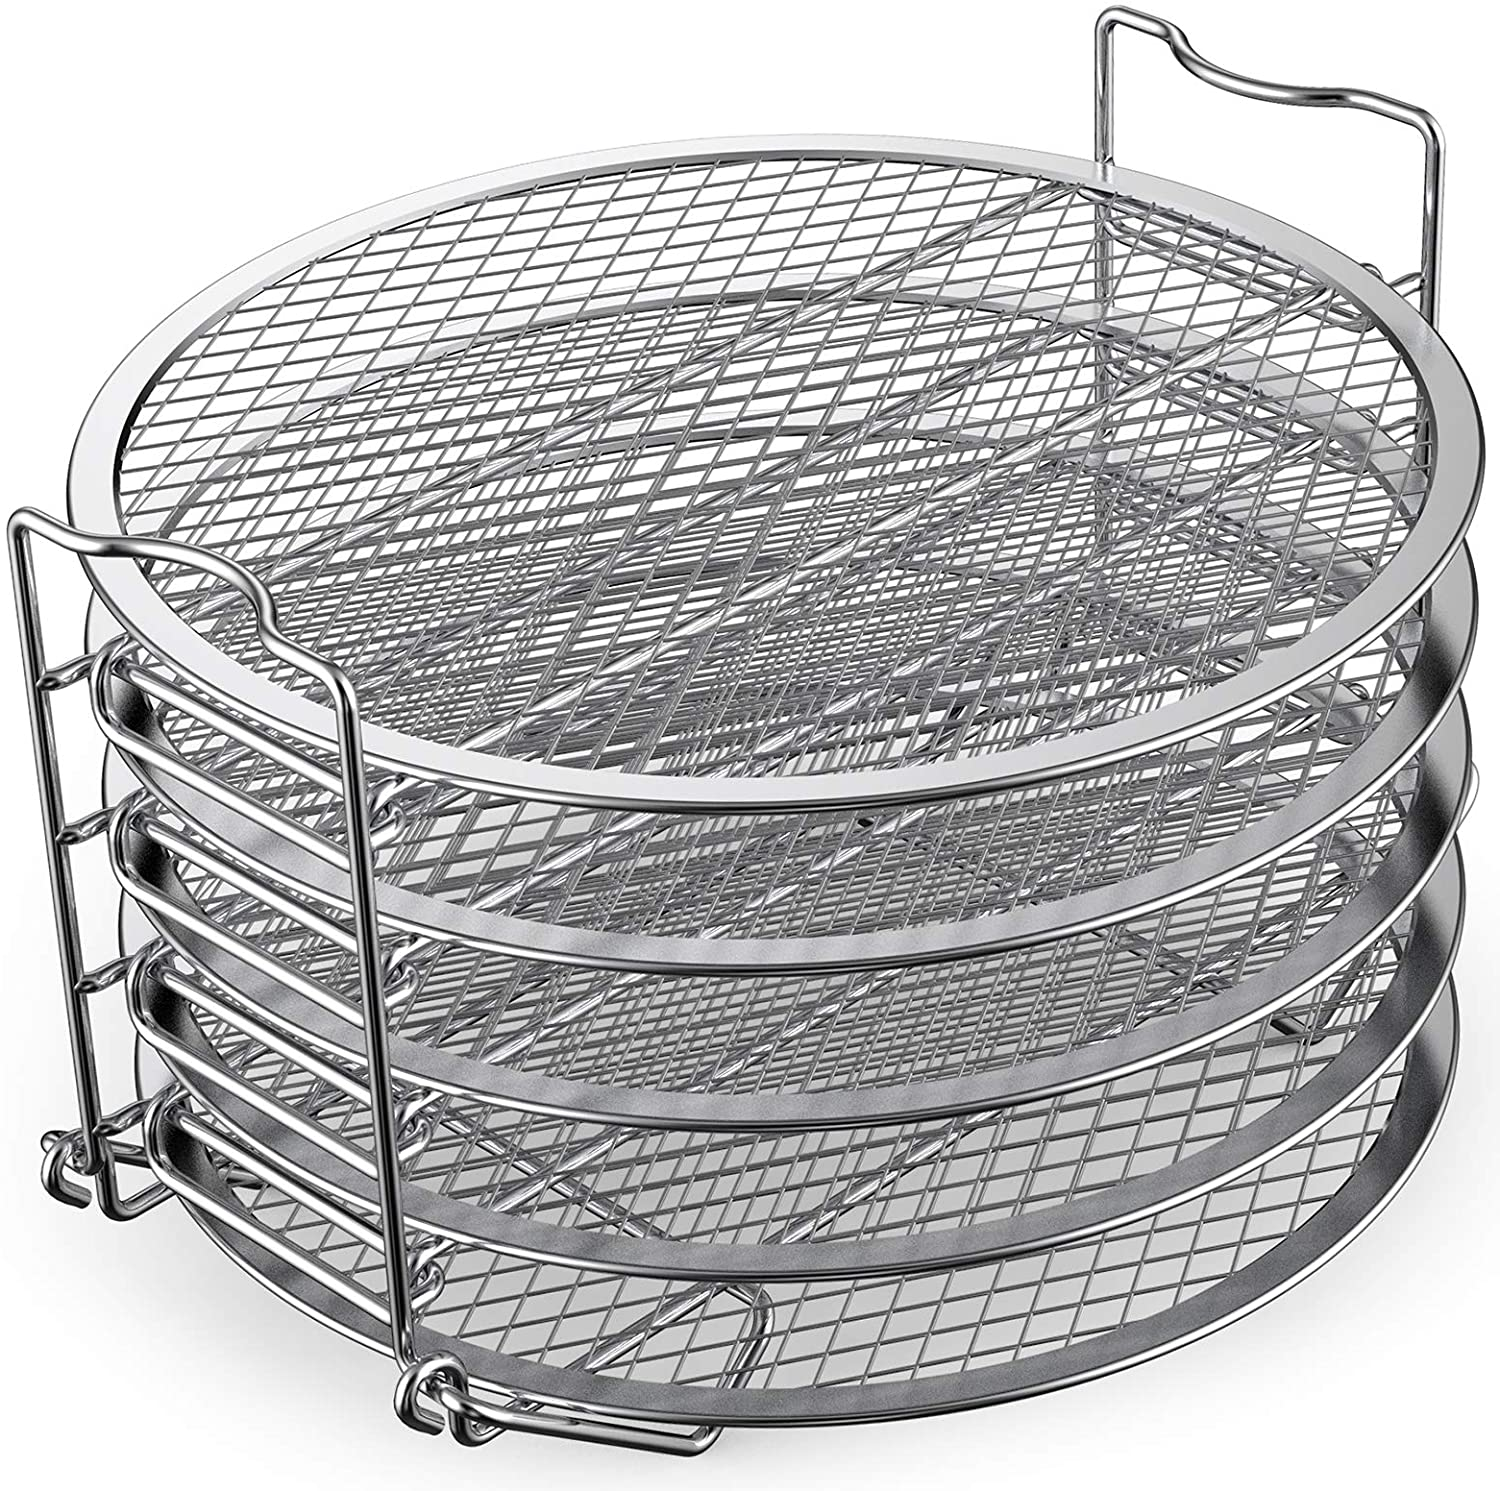 Dehydrator Rack Stainless Steel Stand Accessories Compatible with Ninja Foodi Pressure Cooker and Air Fryer 6.5 and 8 Qt, Instant Pot Duo Crisp 8 Qt,By Sicheer